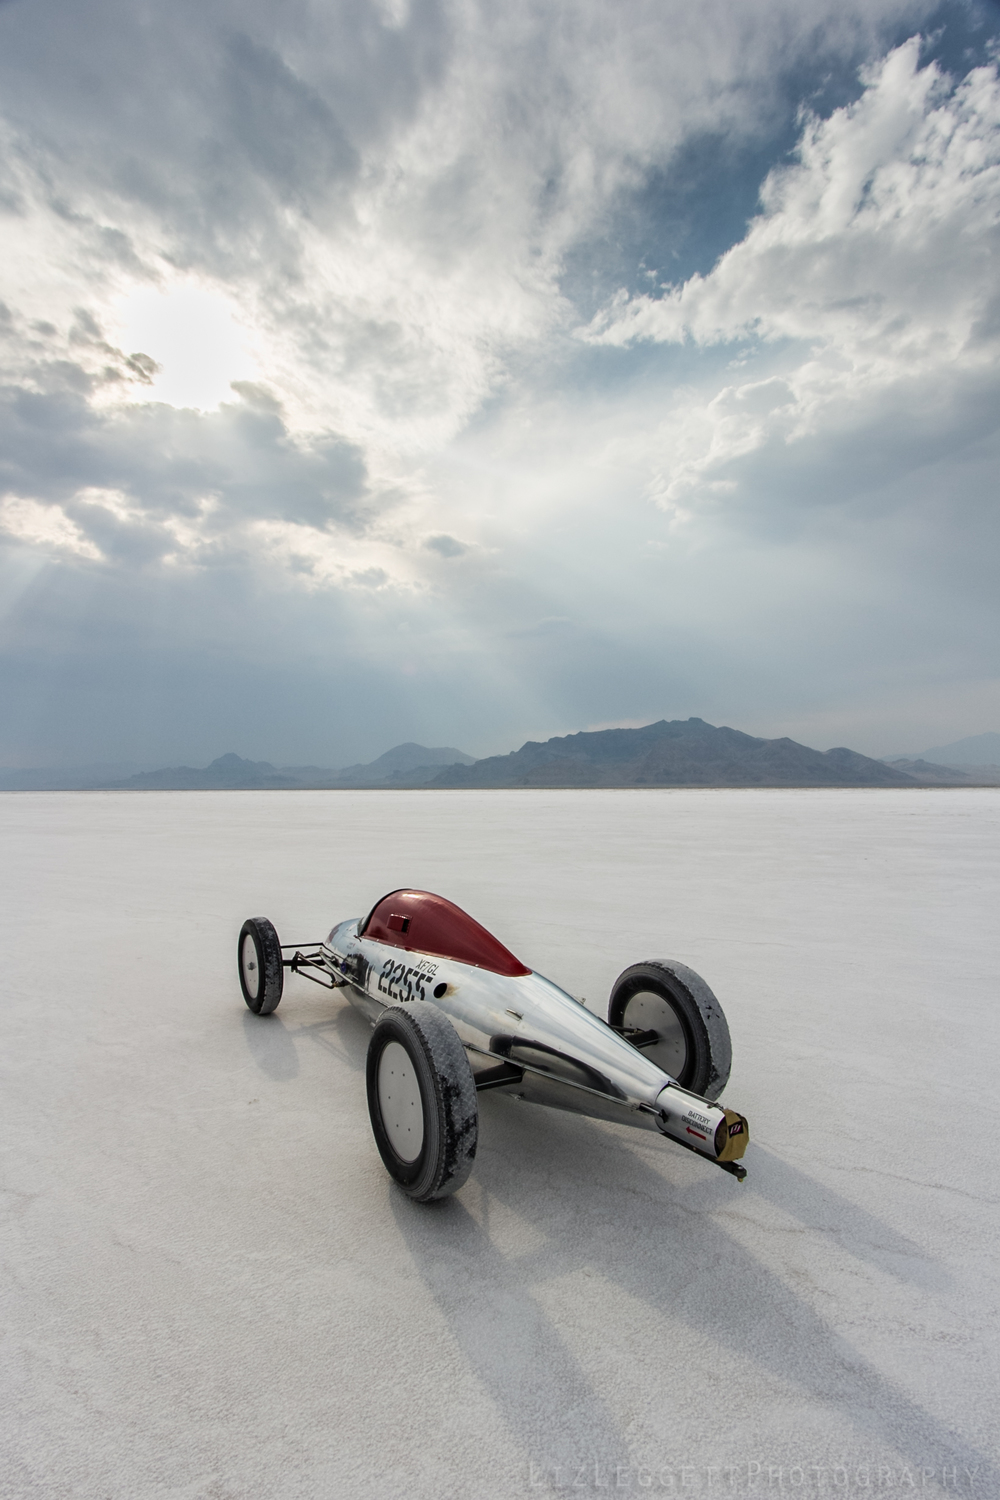 liz_leggett_photography_images_for_bonneville_speed_buffing-1198.jpg